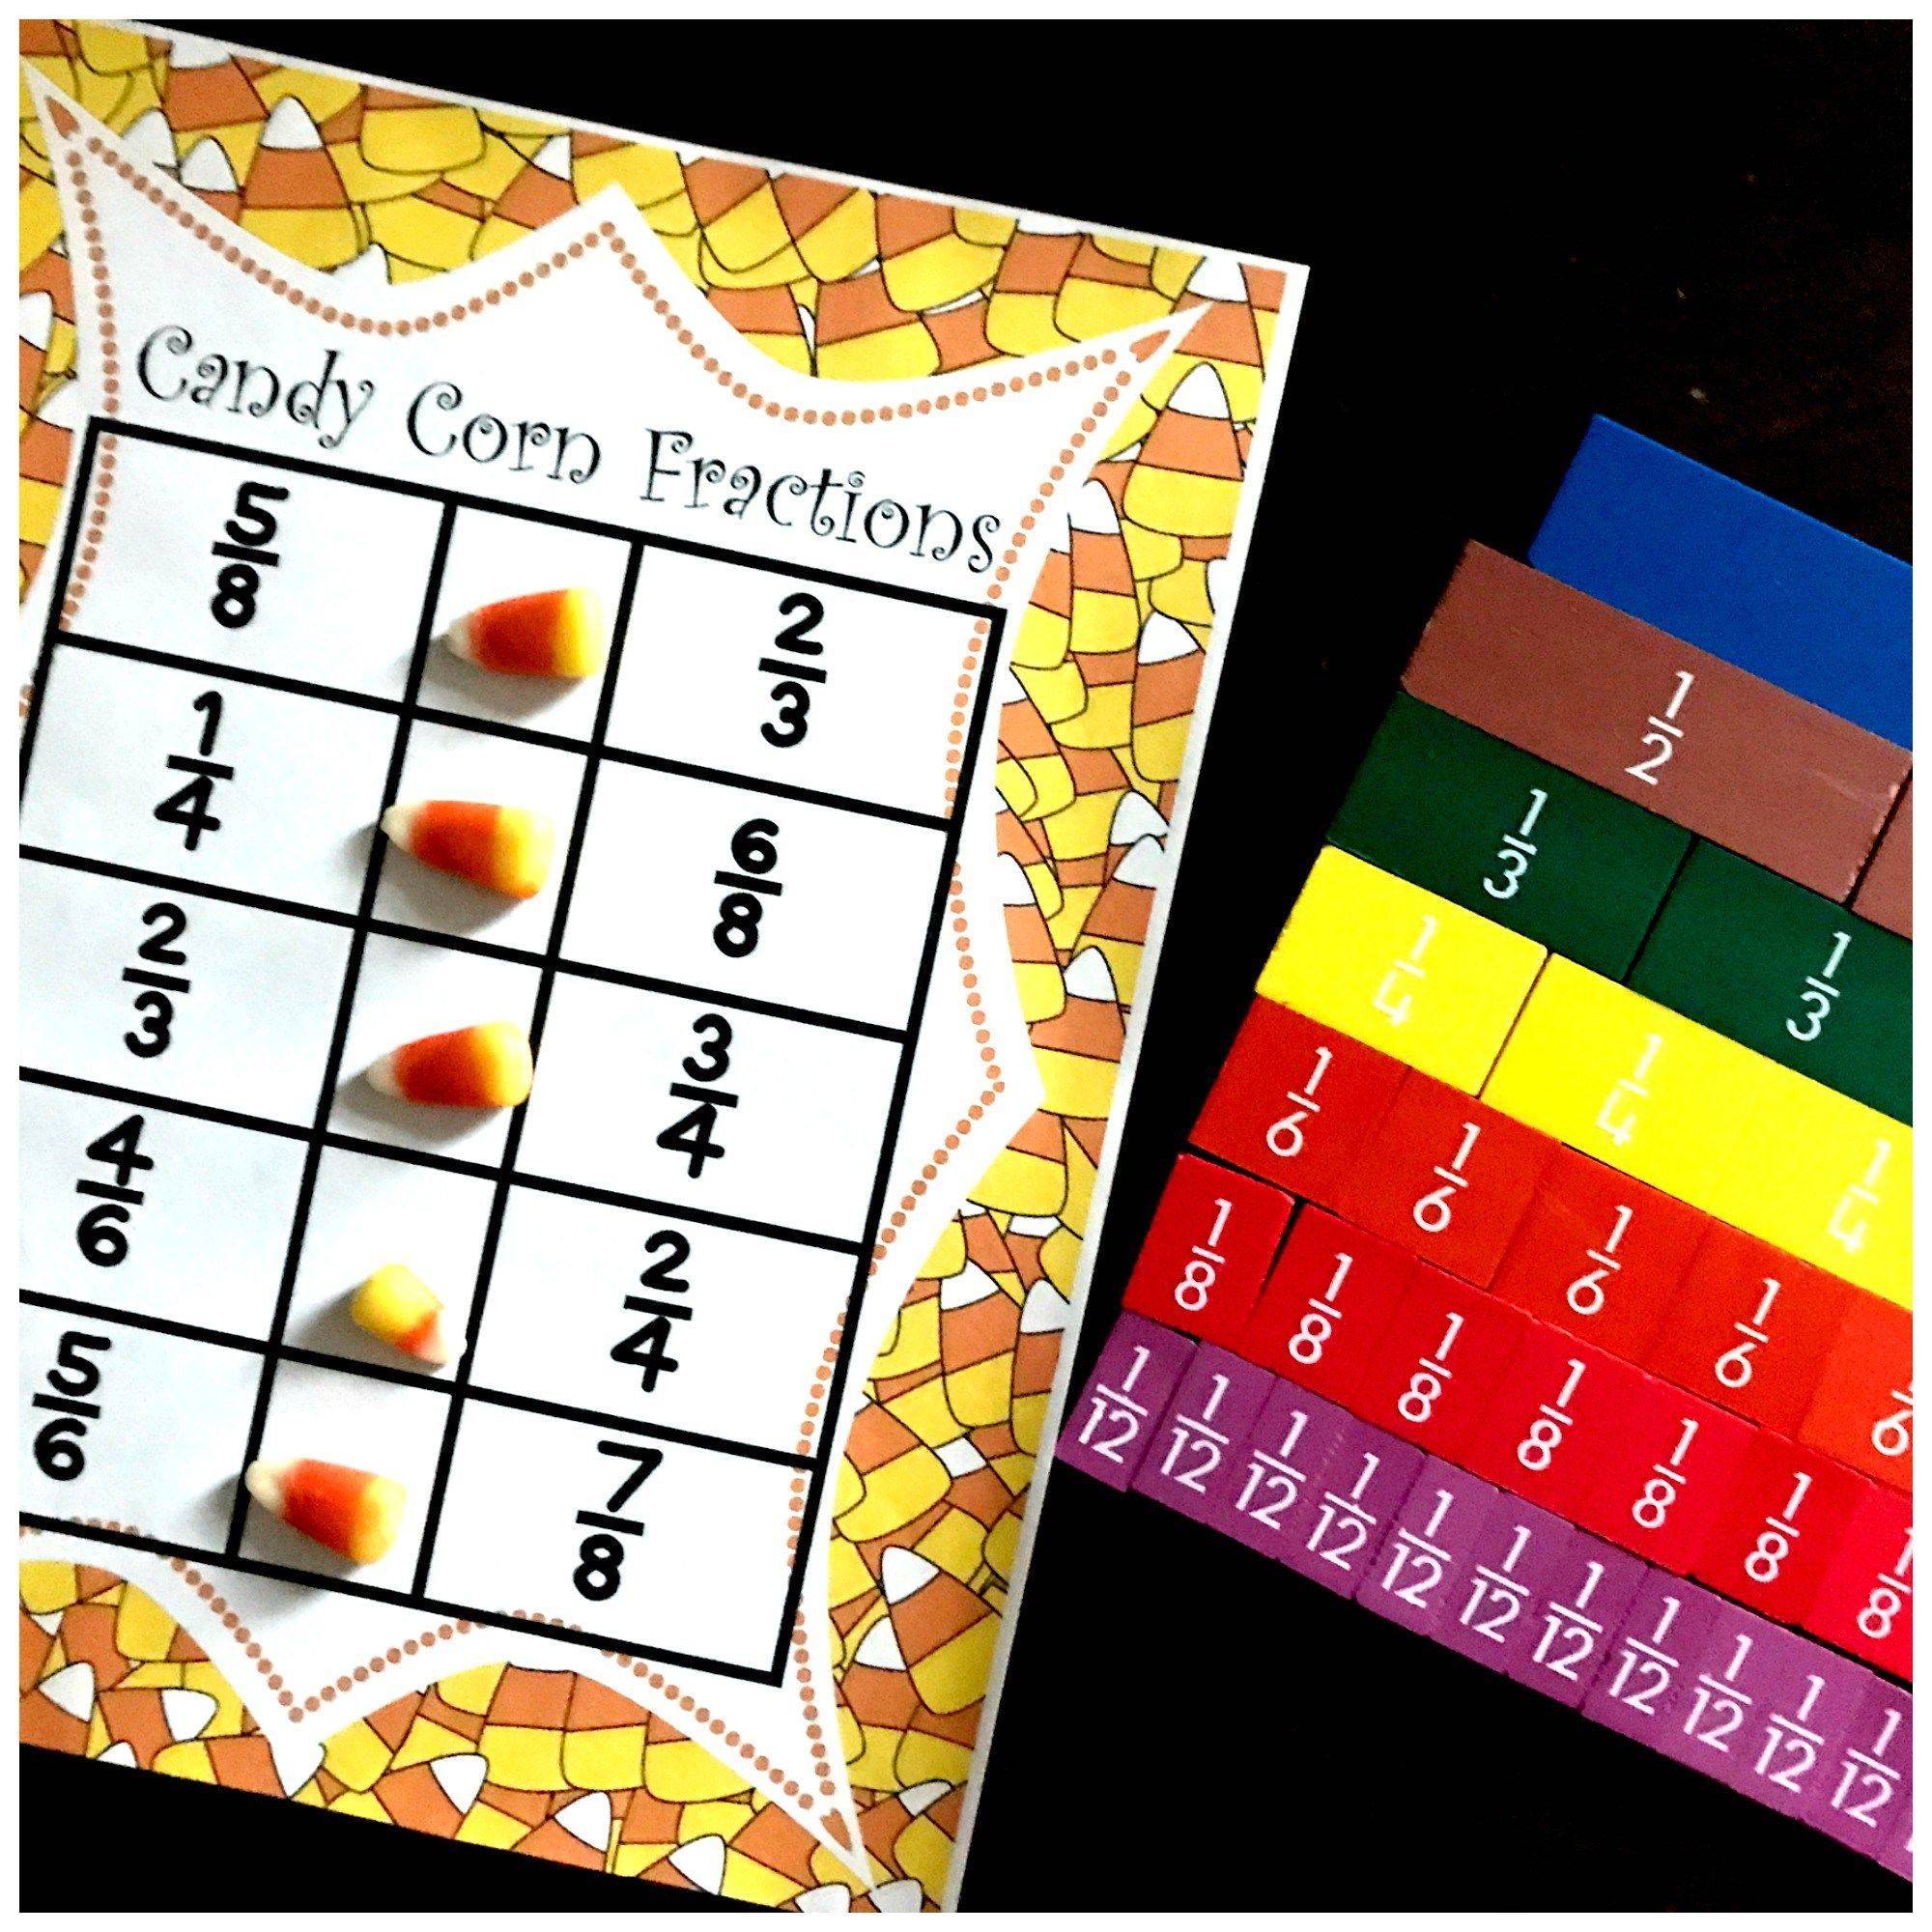 Candy Corn Fractions